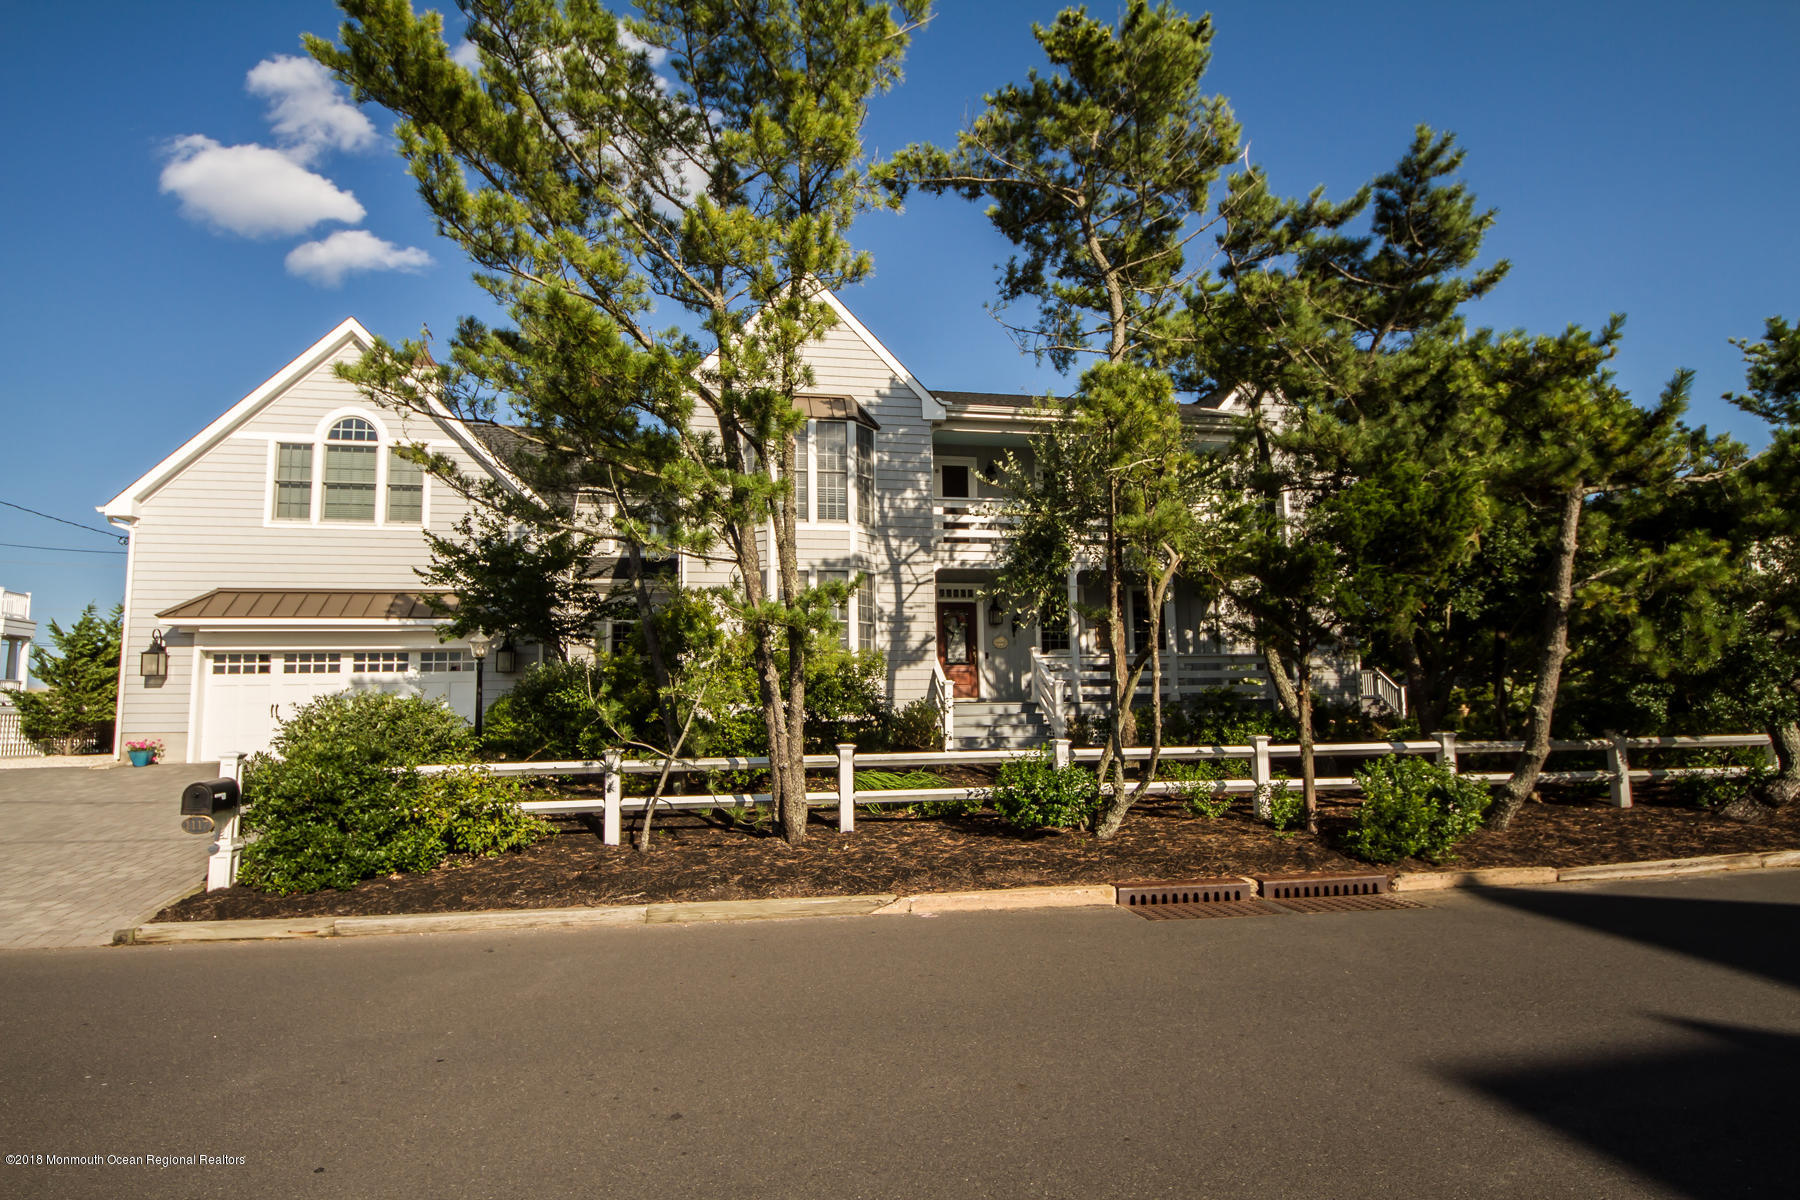 A-Frame Homes for Sale | Monmouth and Ocean County NJ